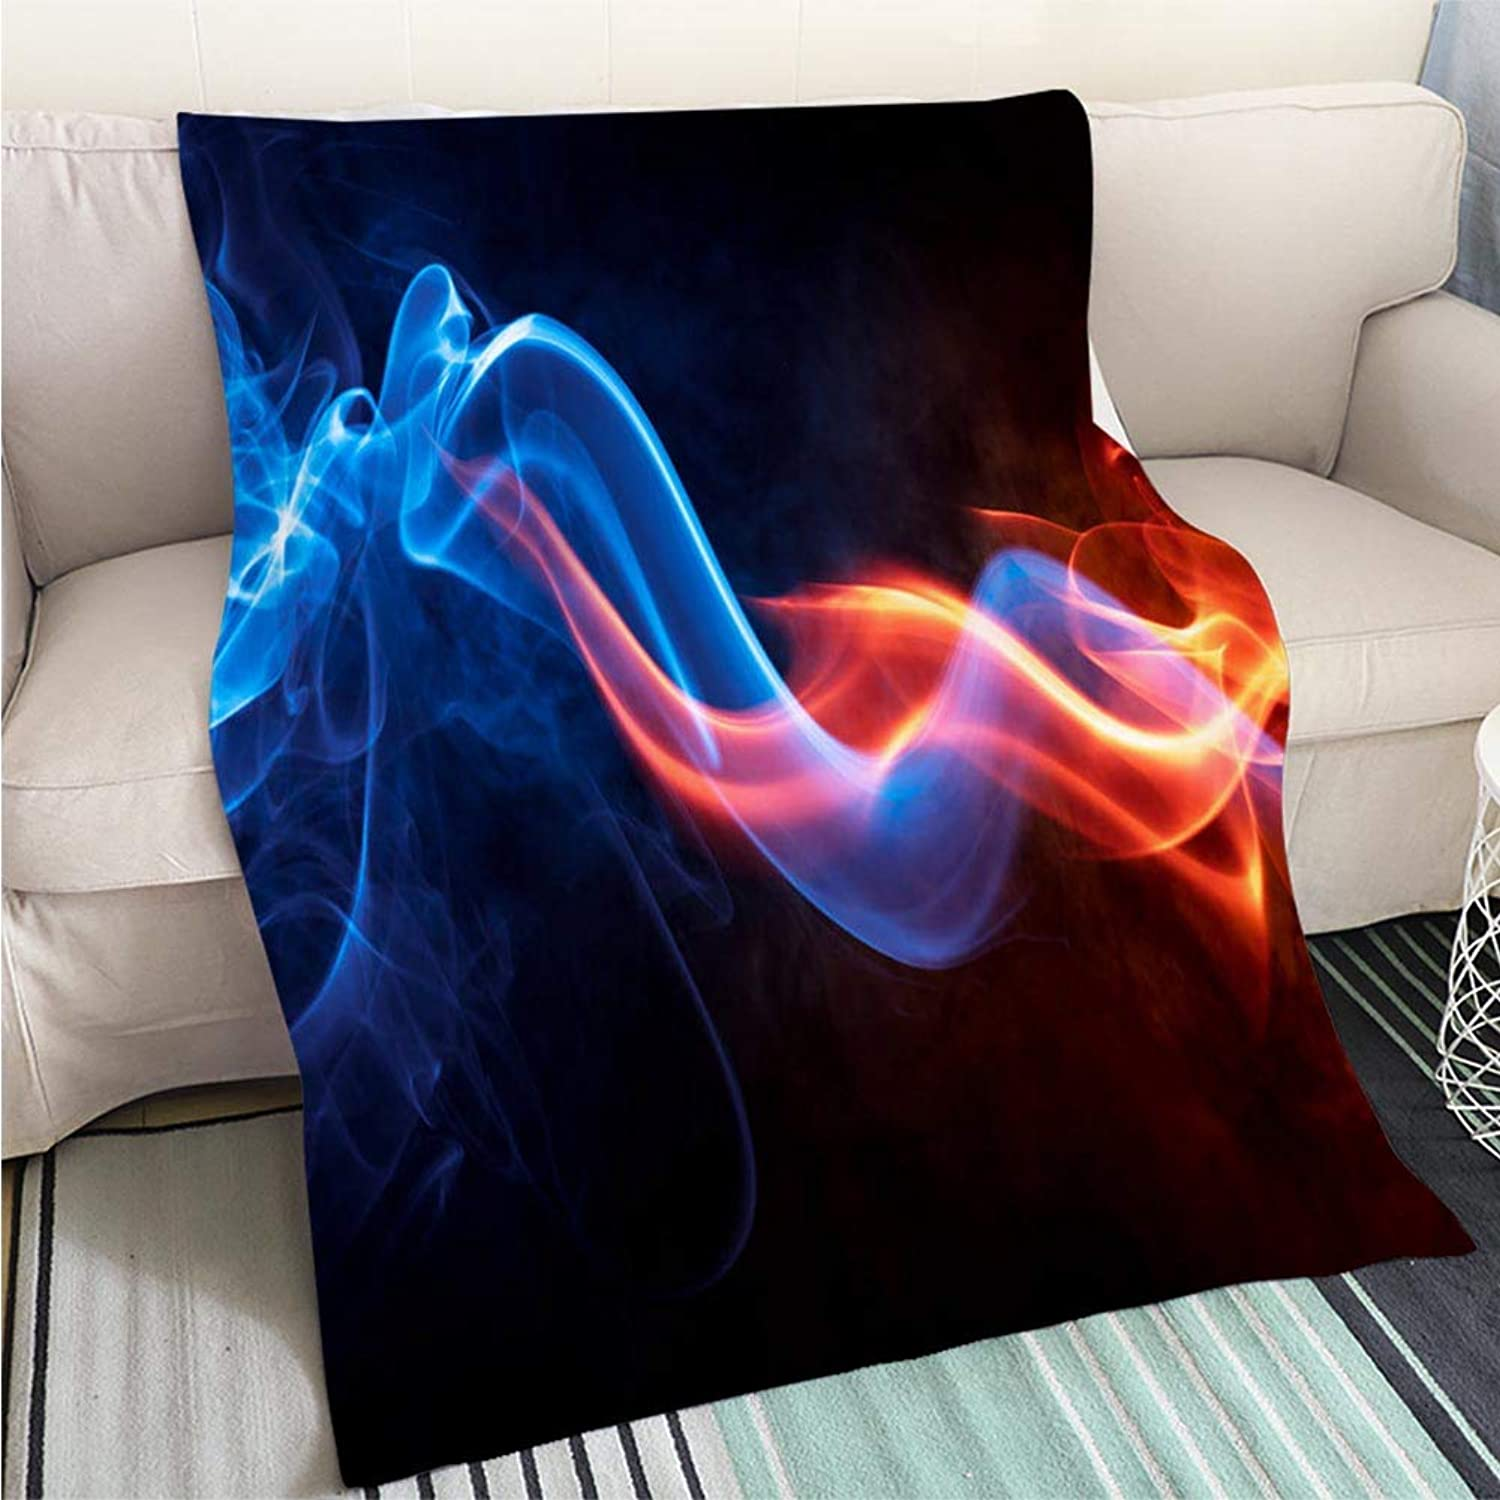 Art Design Photos Cool Quilt Clored Abstract bluee and red Smoke Perfect for Couch Sofa or Bed Cool Quilt